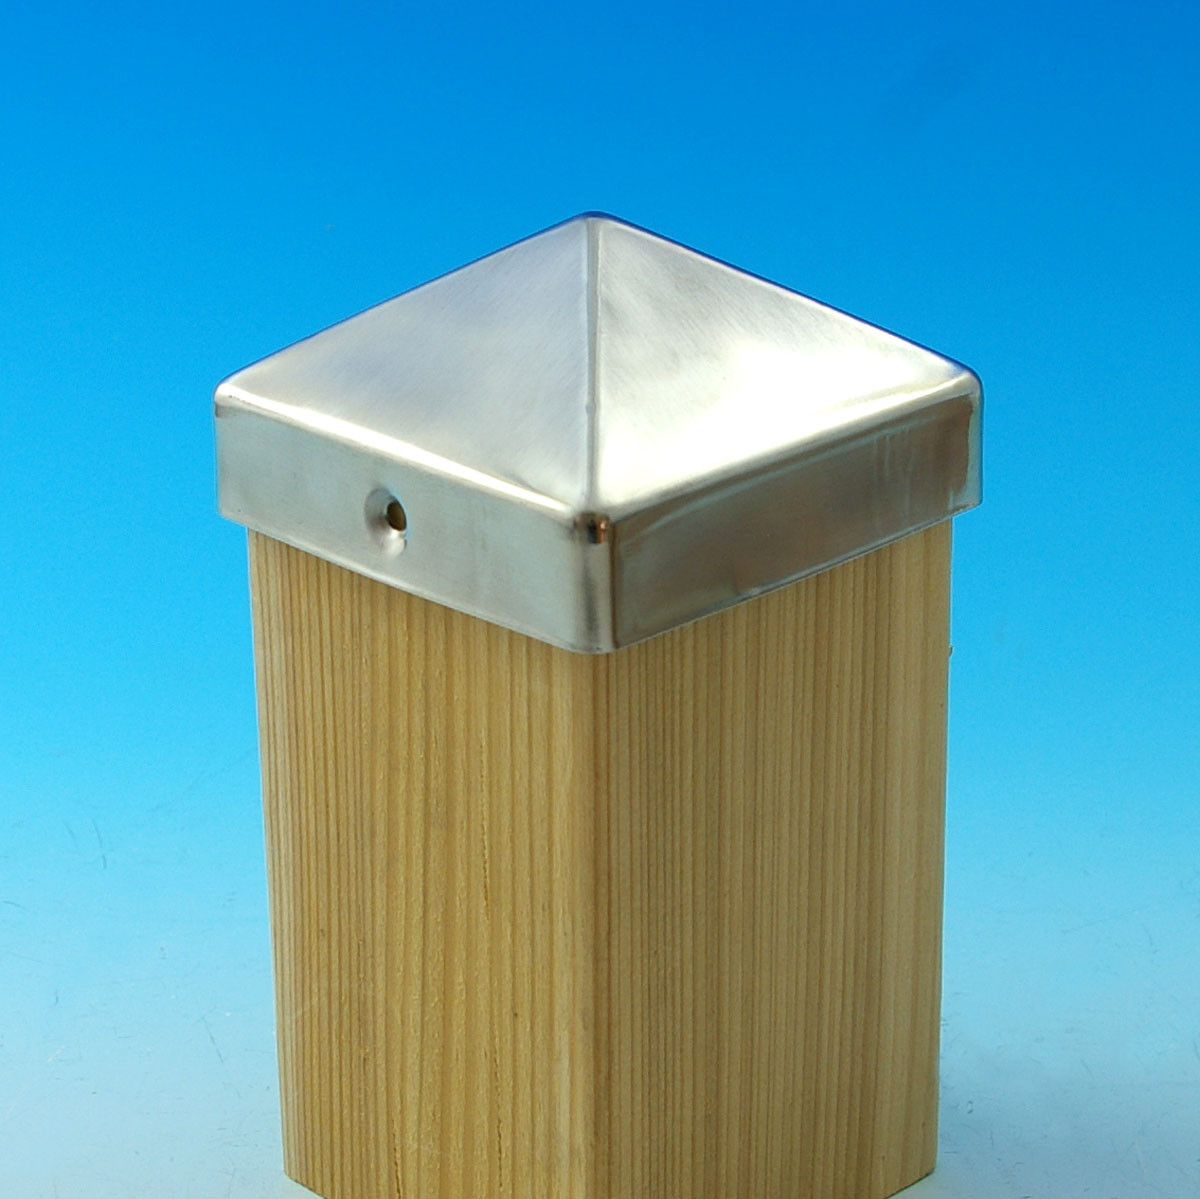 Stainless Steel Pyramid Post Cap-3-5/8 in